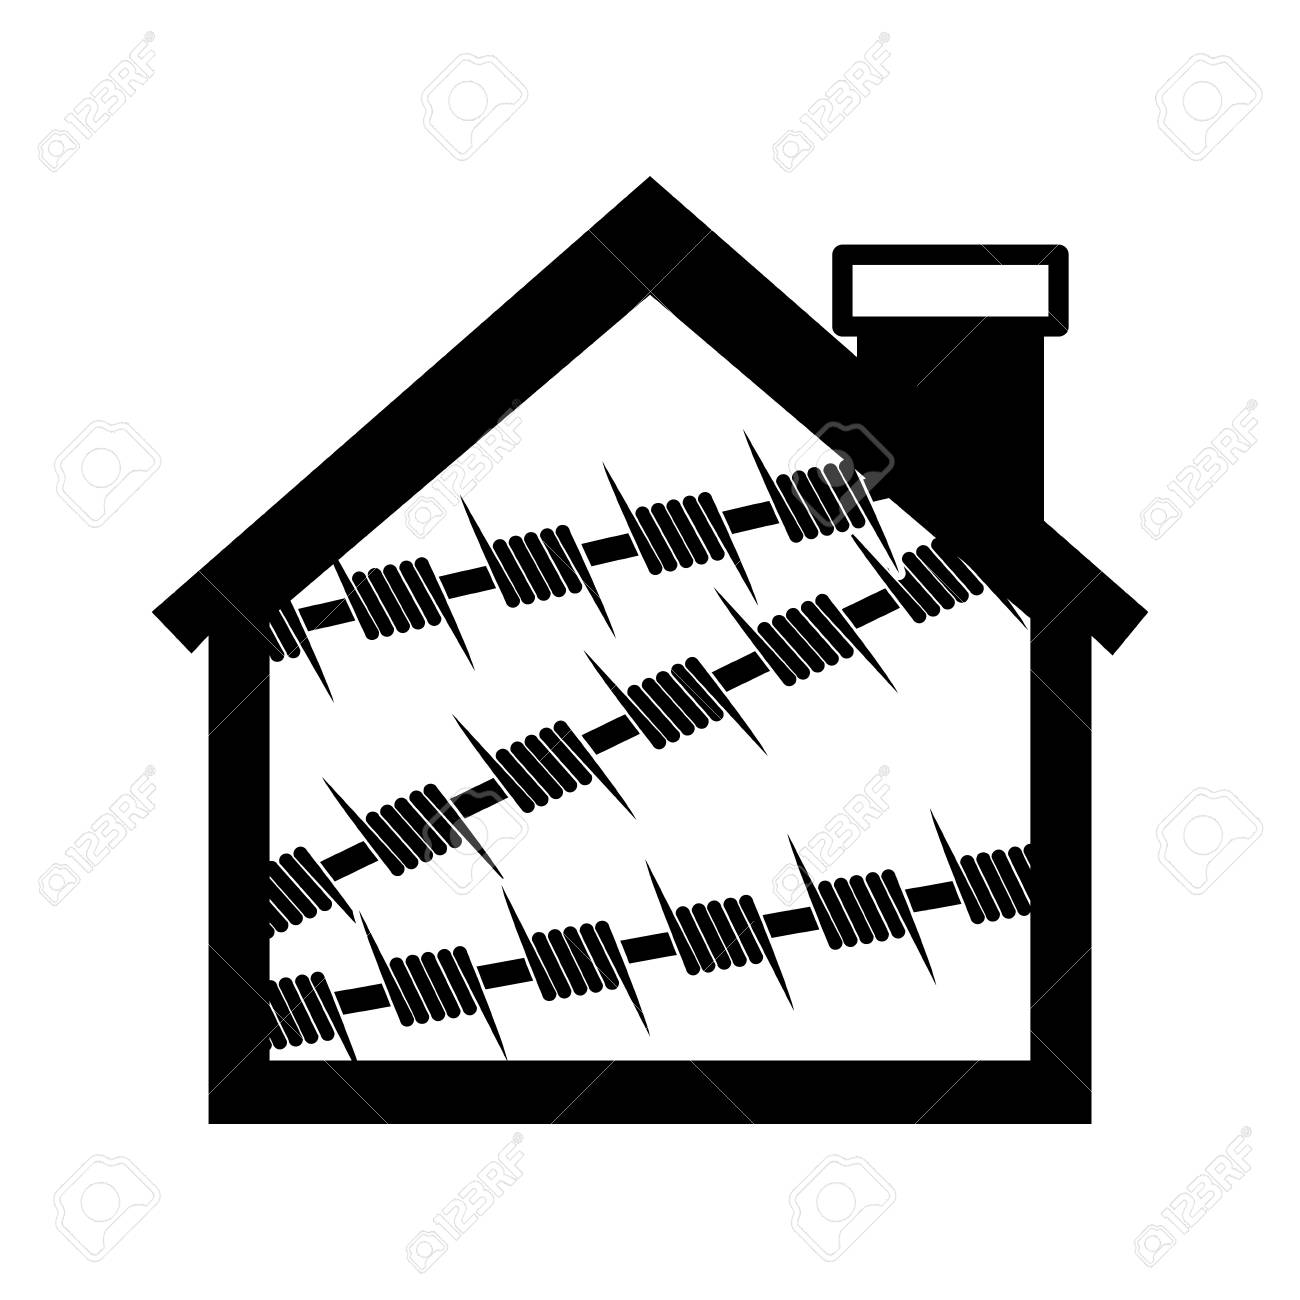 silhouette house one floor with metallic barbed wire icon vector Frame Clip Art silhouette house one floor with metallic barbed wire icon vector illustration stock vector 67135670